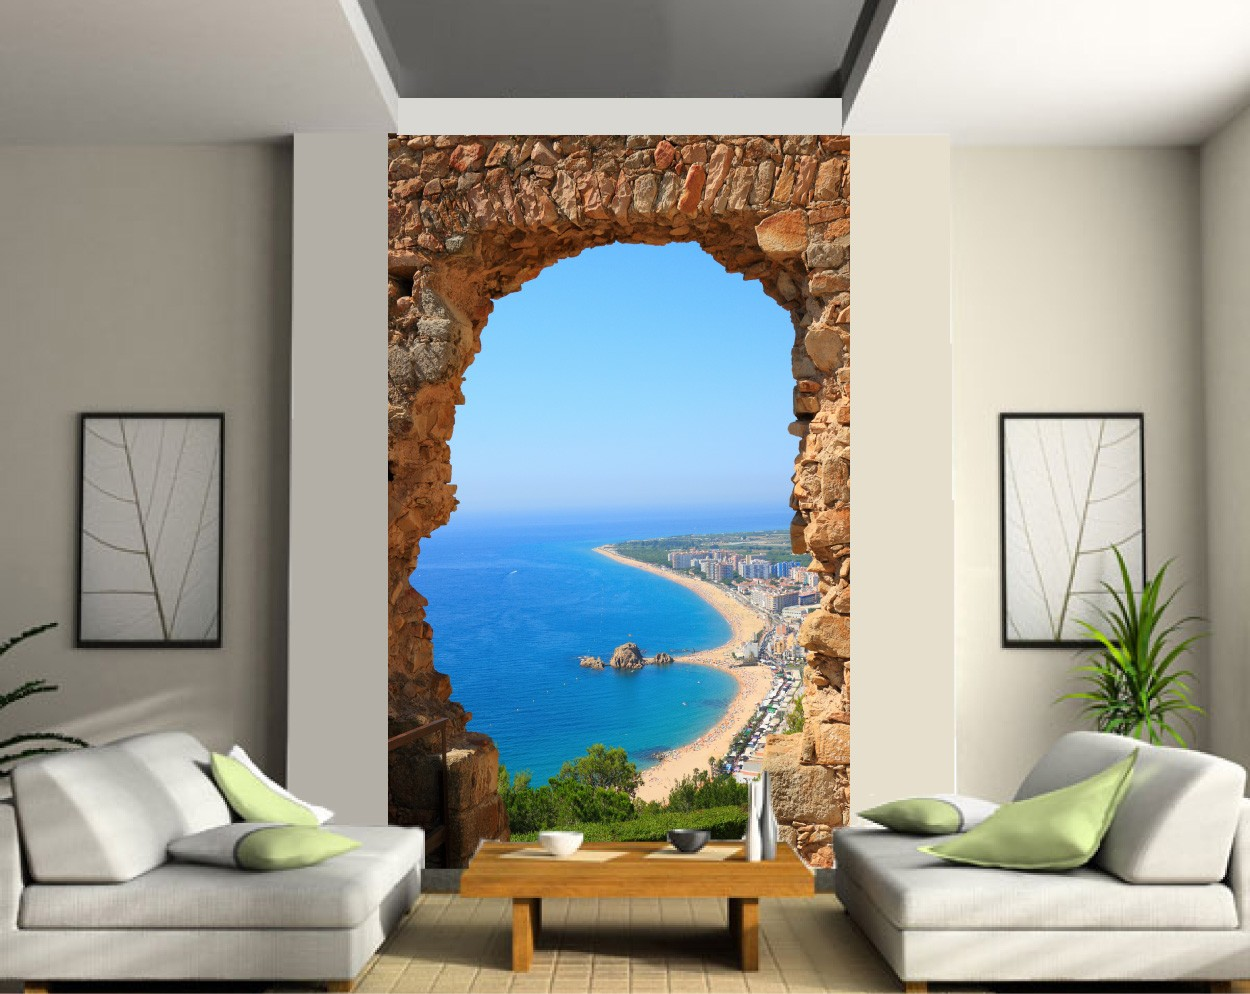 Poster mural geant zen stunning simple poster mural grand format trompe l oeil wall murals you - Trompe l oeil mural grand format ...